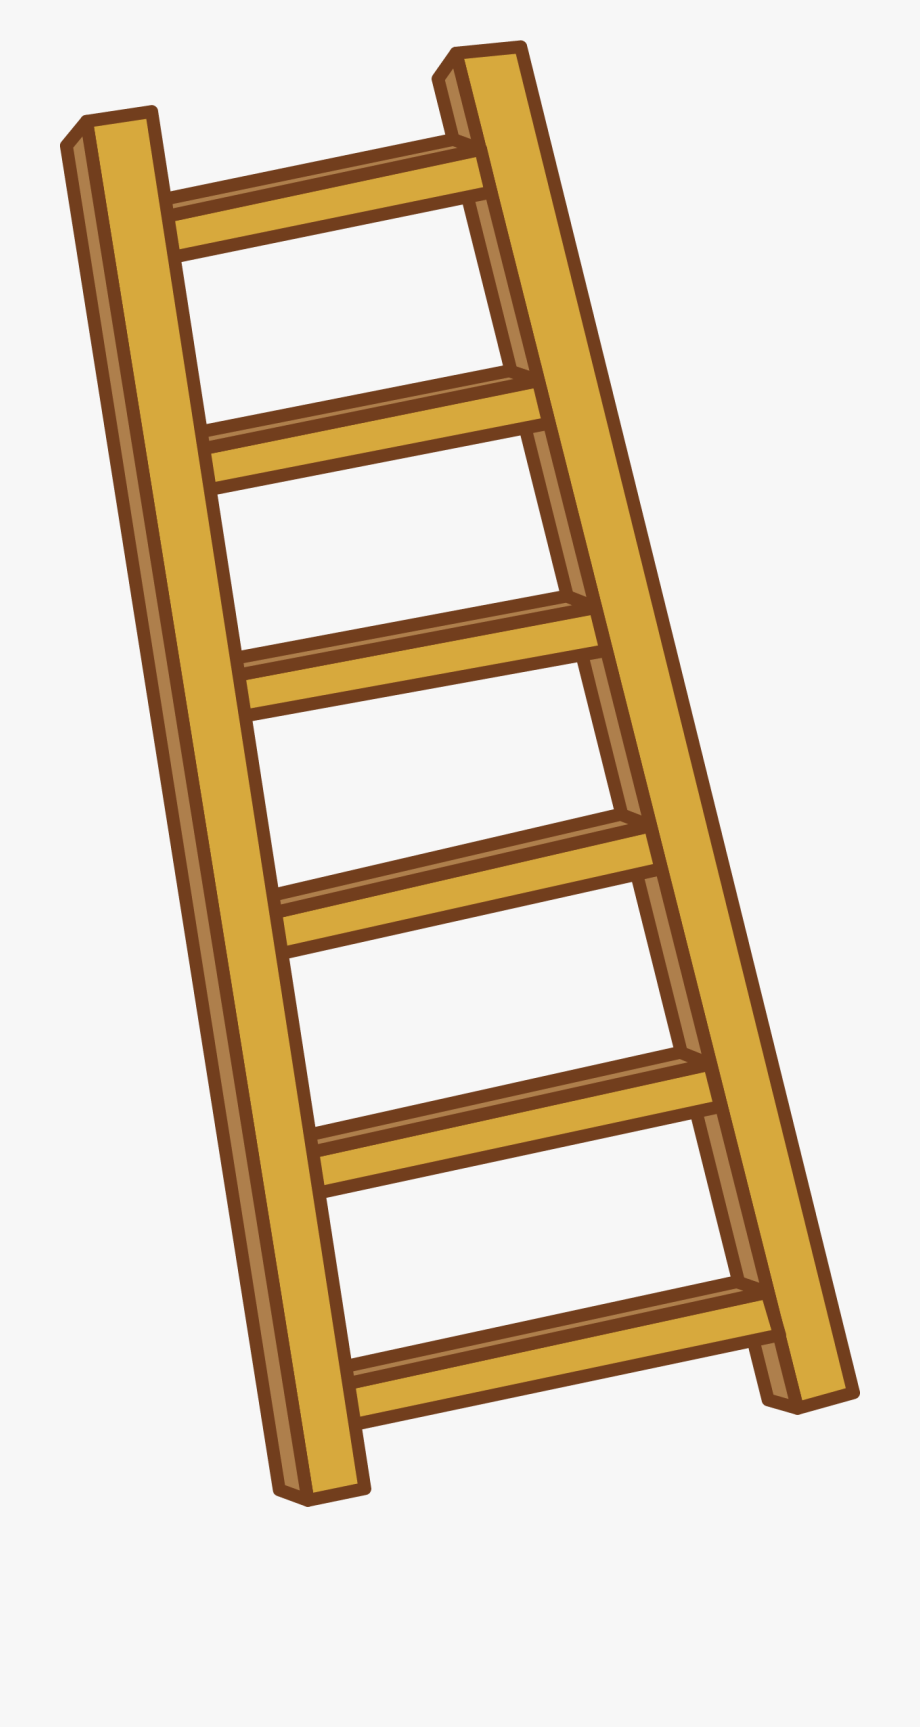 Ladder clipart simple. Permalink to clip art